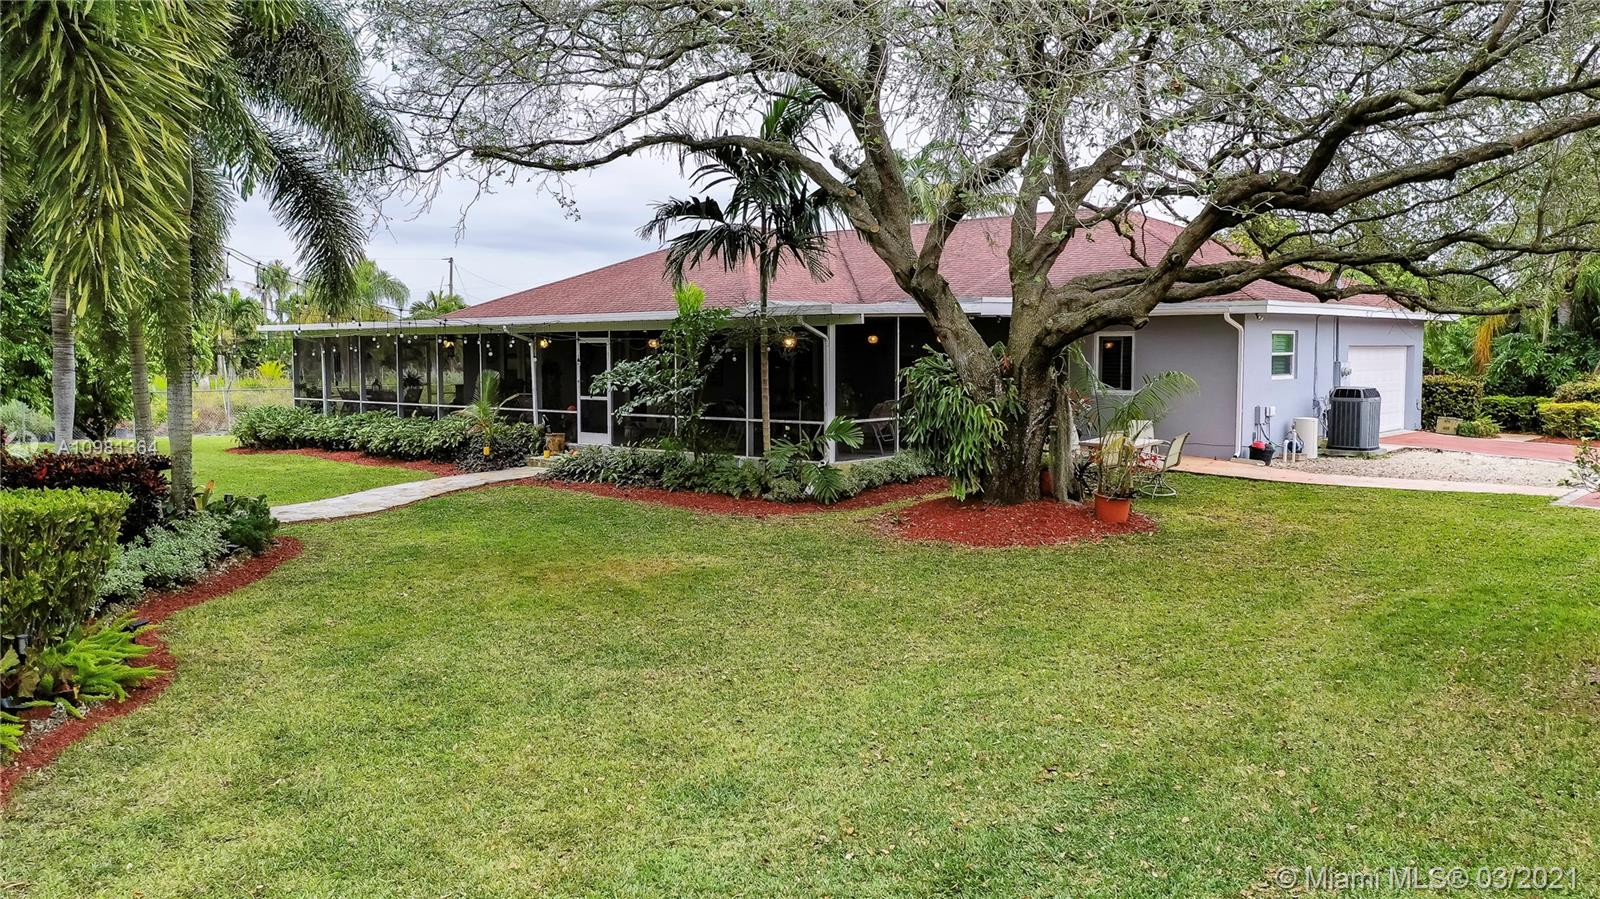 24280 SW 182 Ave Property Photo - Homestead, FL real estate listing